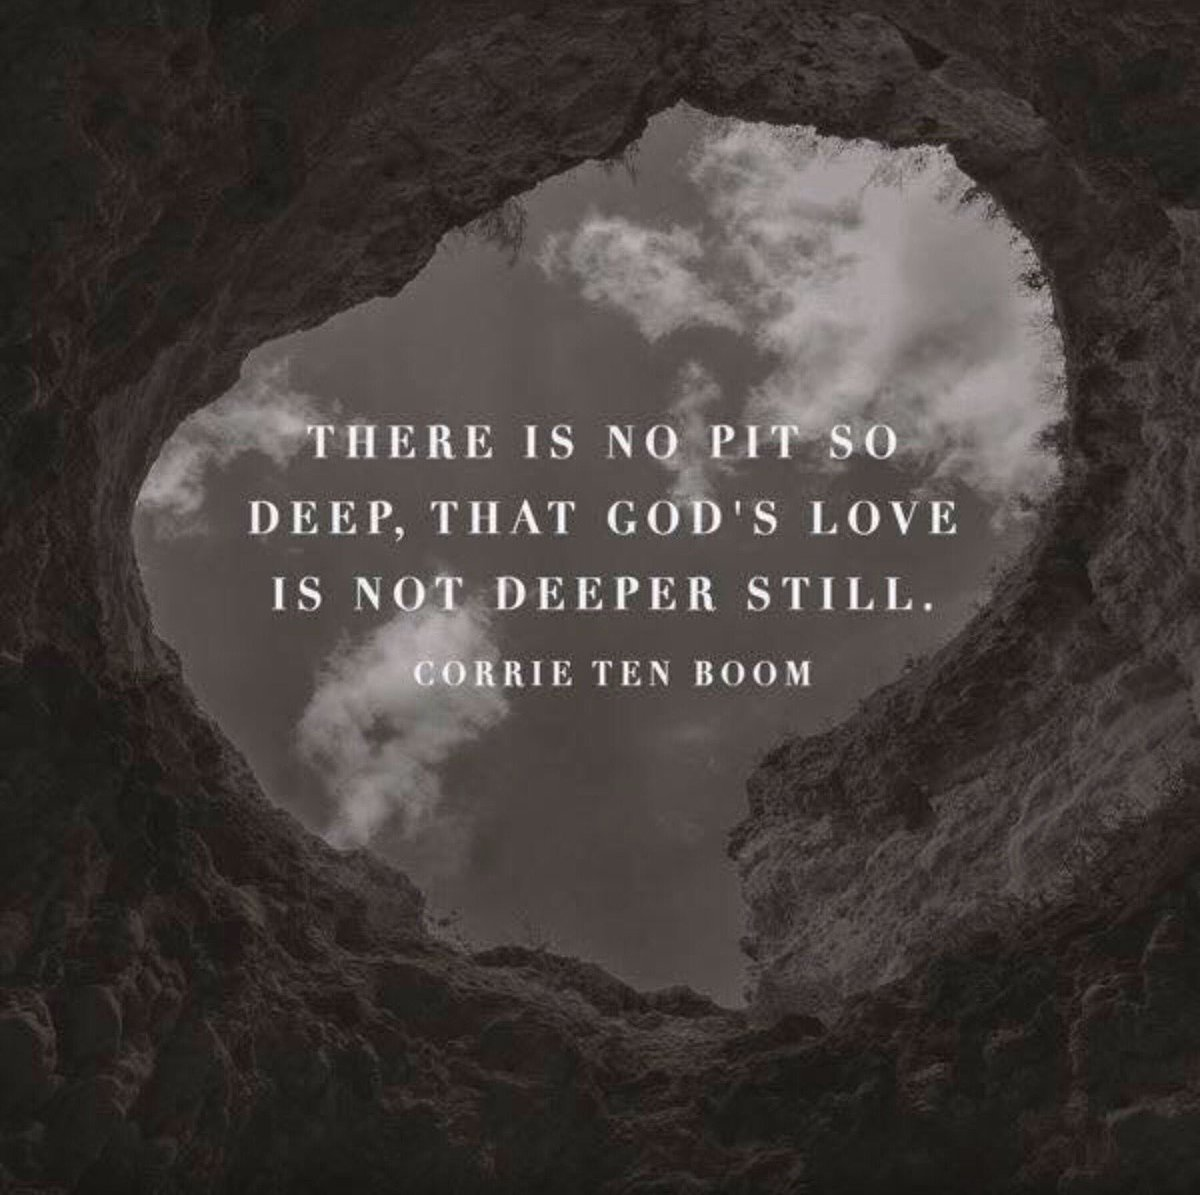 There is no pit so deep, that God's love is not deeper still. ❤️